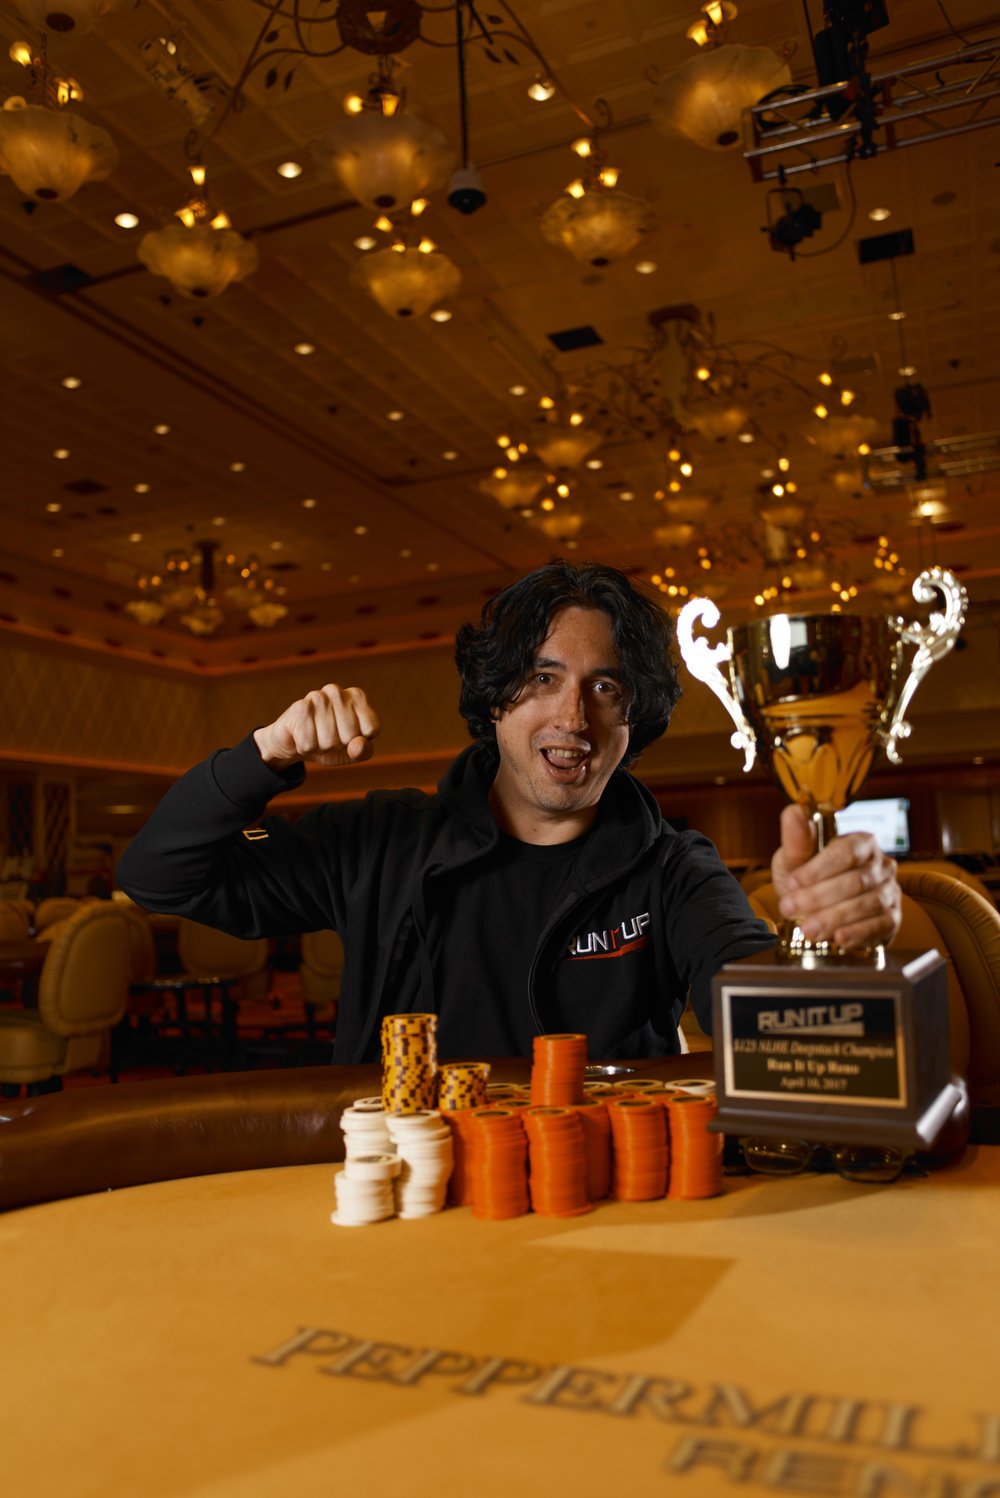 Chip Tutu is our Deepstack Champion!